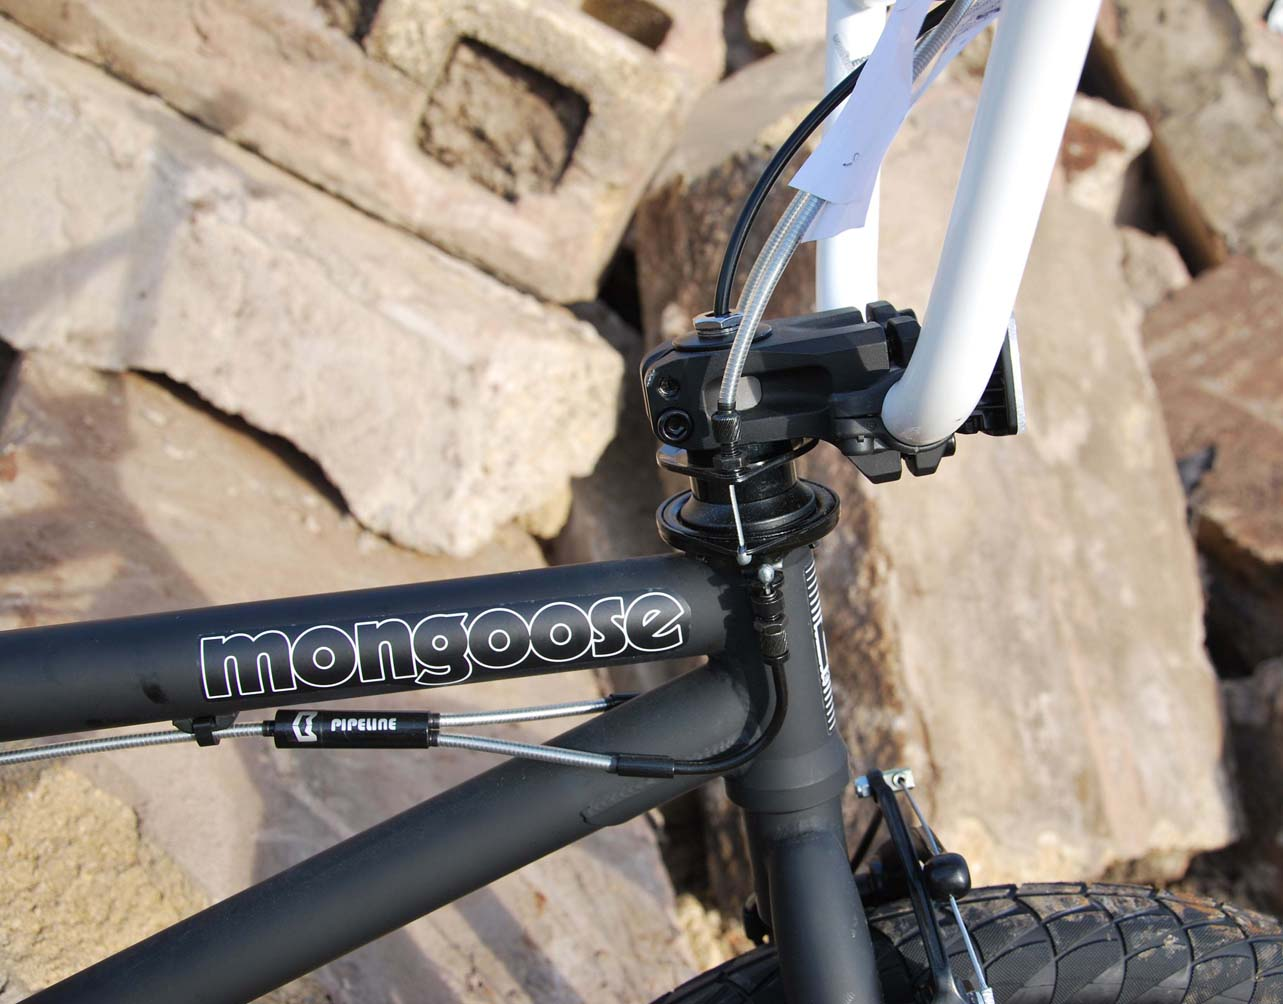 Ulta Return Policy Without Receipt Pdf Mongoose Diagram Matte Black  Bmx Bike Returns  Ebay Invoice Translate Word with Blank Billing Invoice Thumbnail  Thumbnail   Invoice Credit Excel